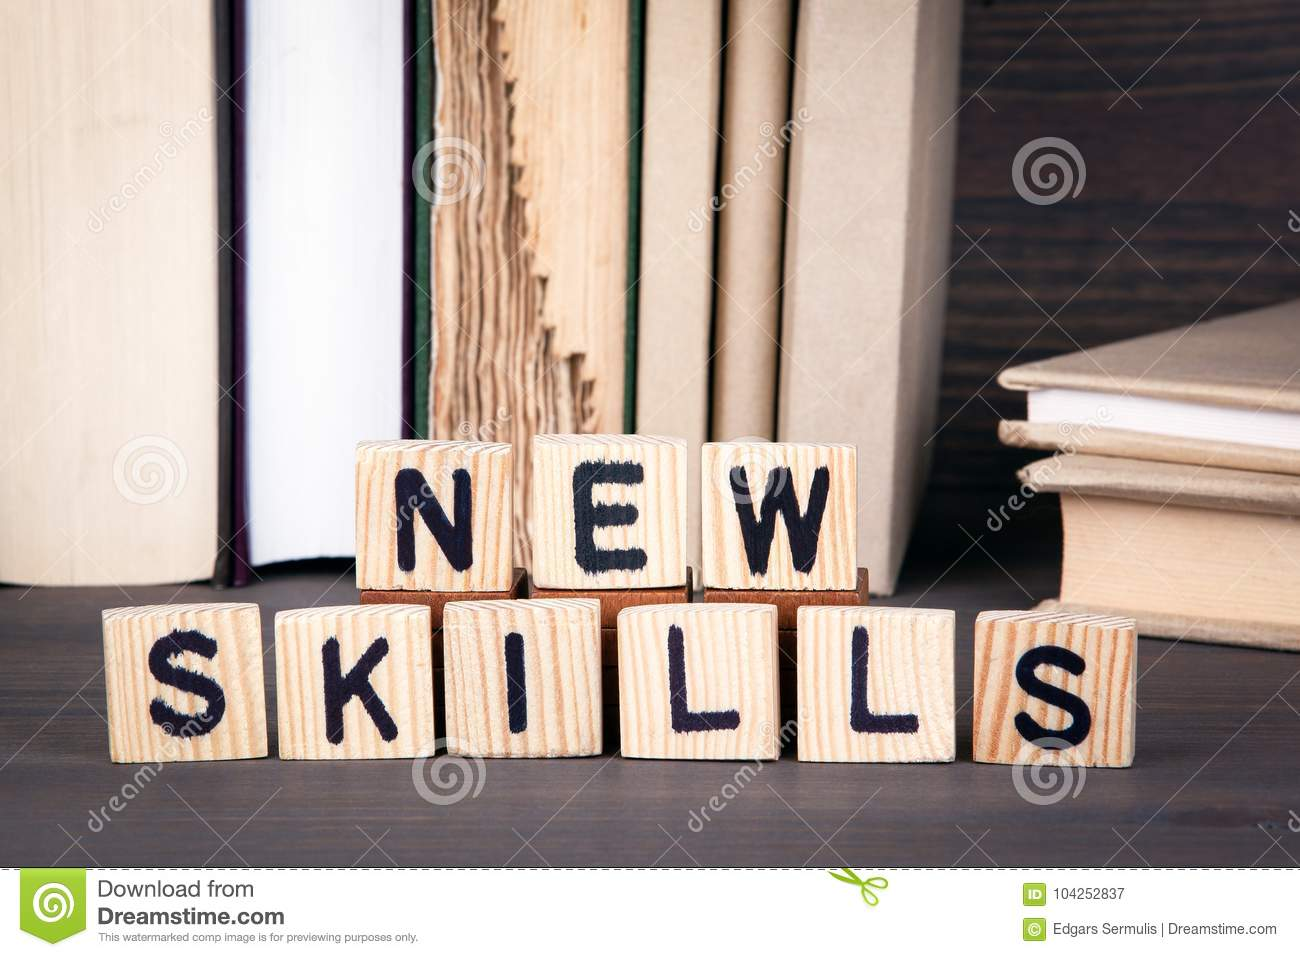 New skills, wooden letters on wooden table. Education, success and communication background